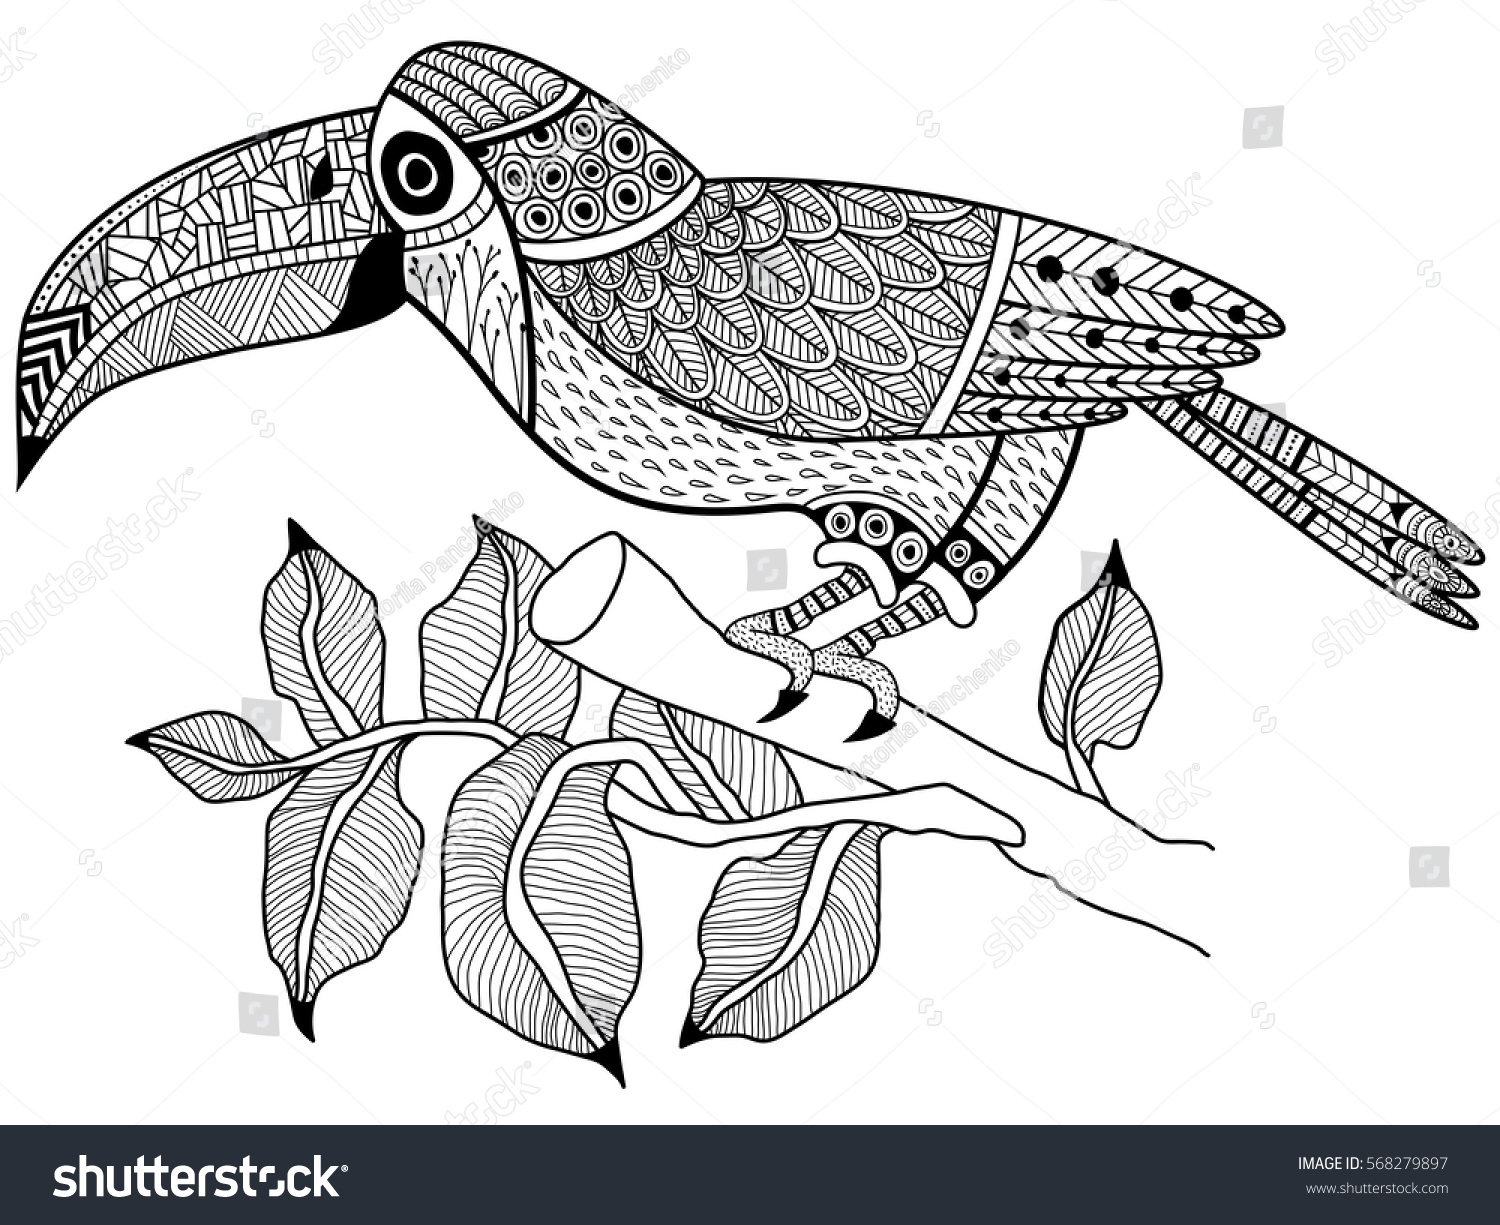 toucan bird on branch tree coloring stock vector 568279897